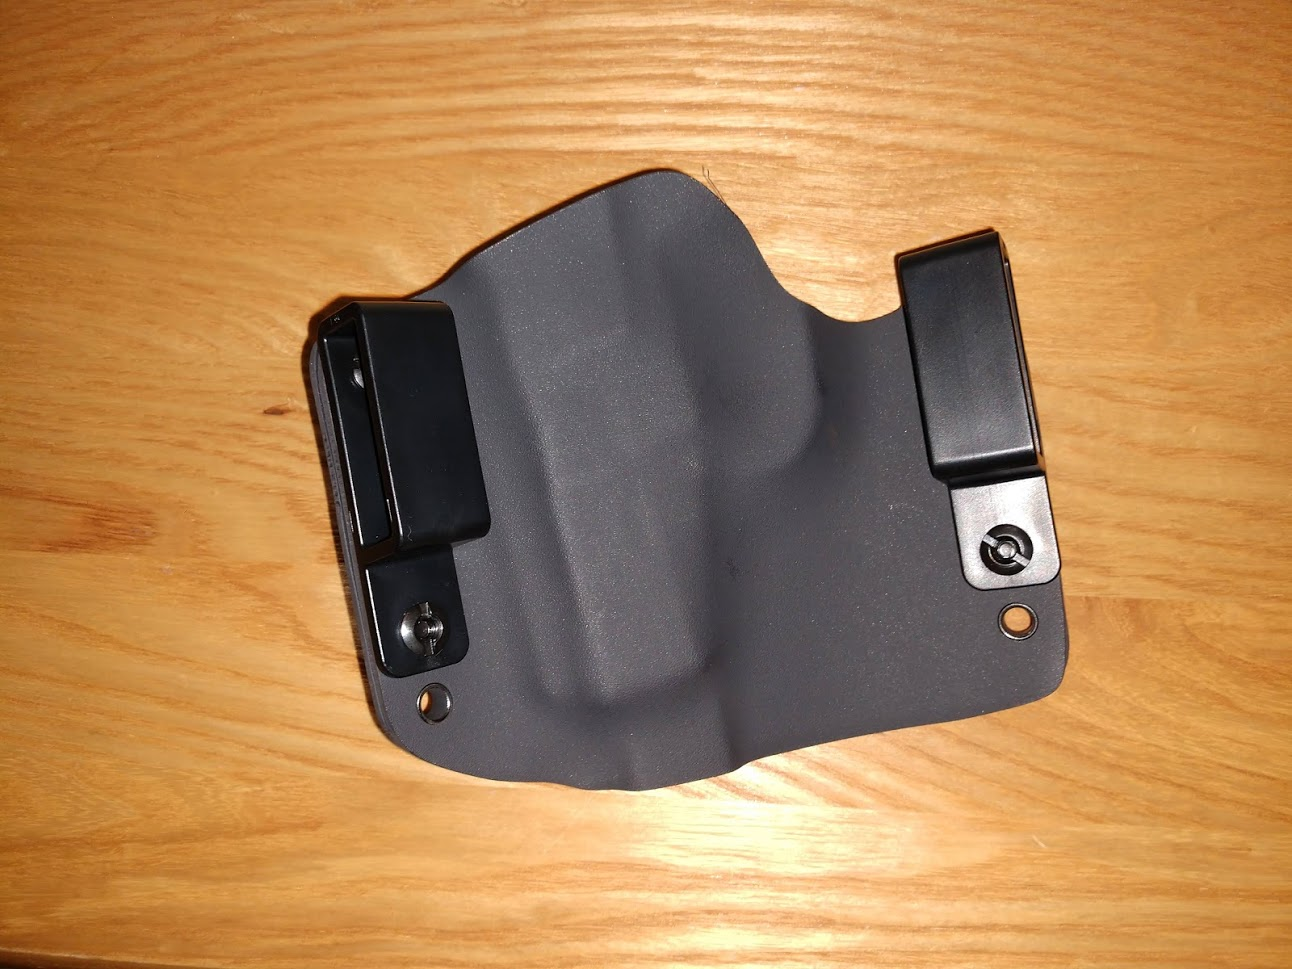 holster belt side view.jpg